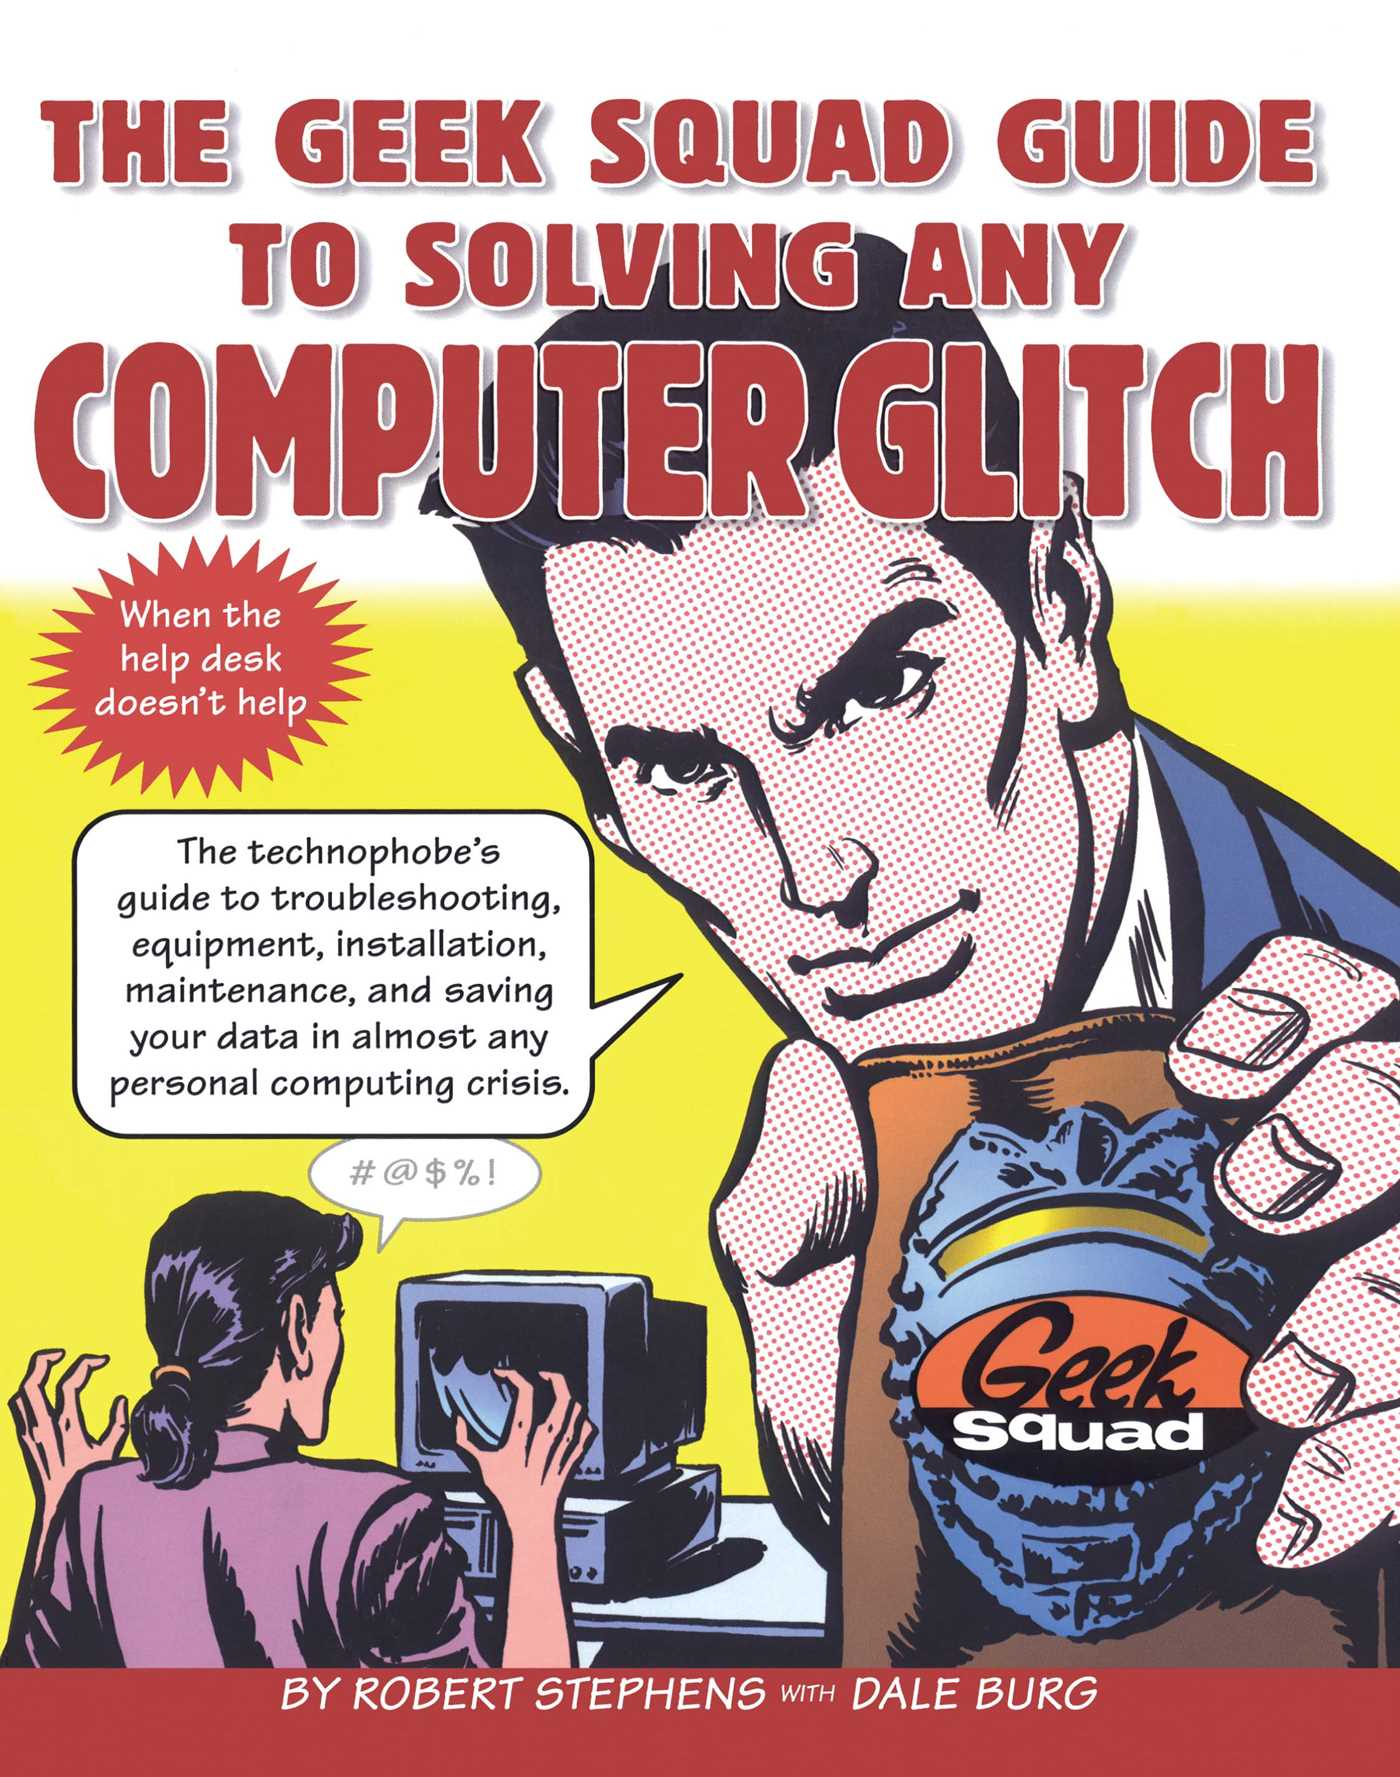 Book Cover Image (jpg): The Geek Squad Guide to Solving Any Computer Glitch